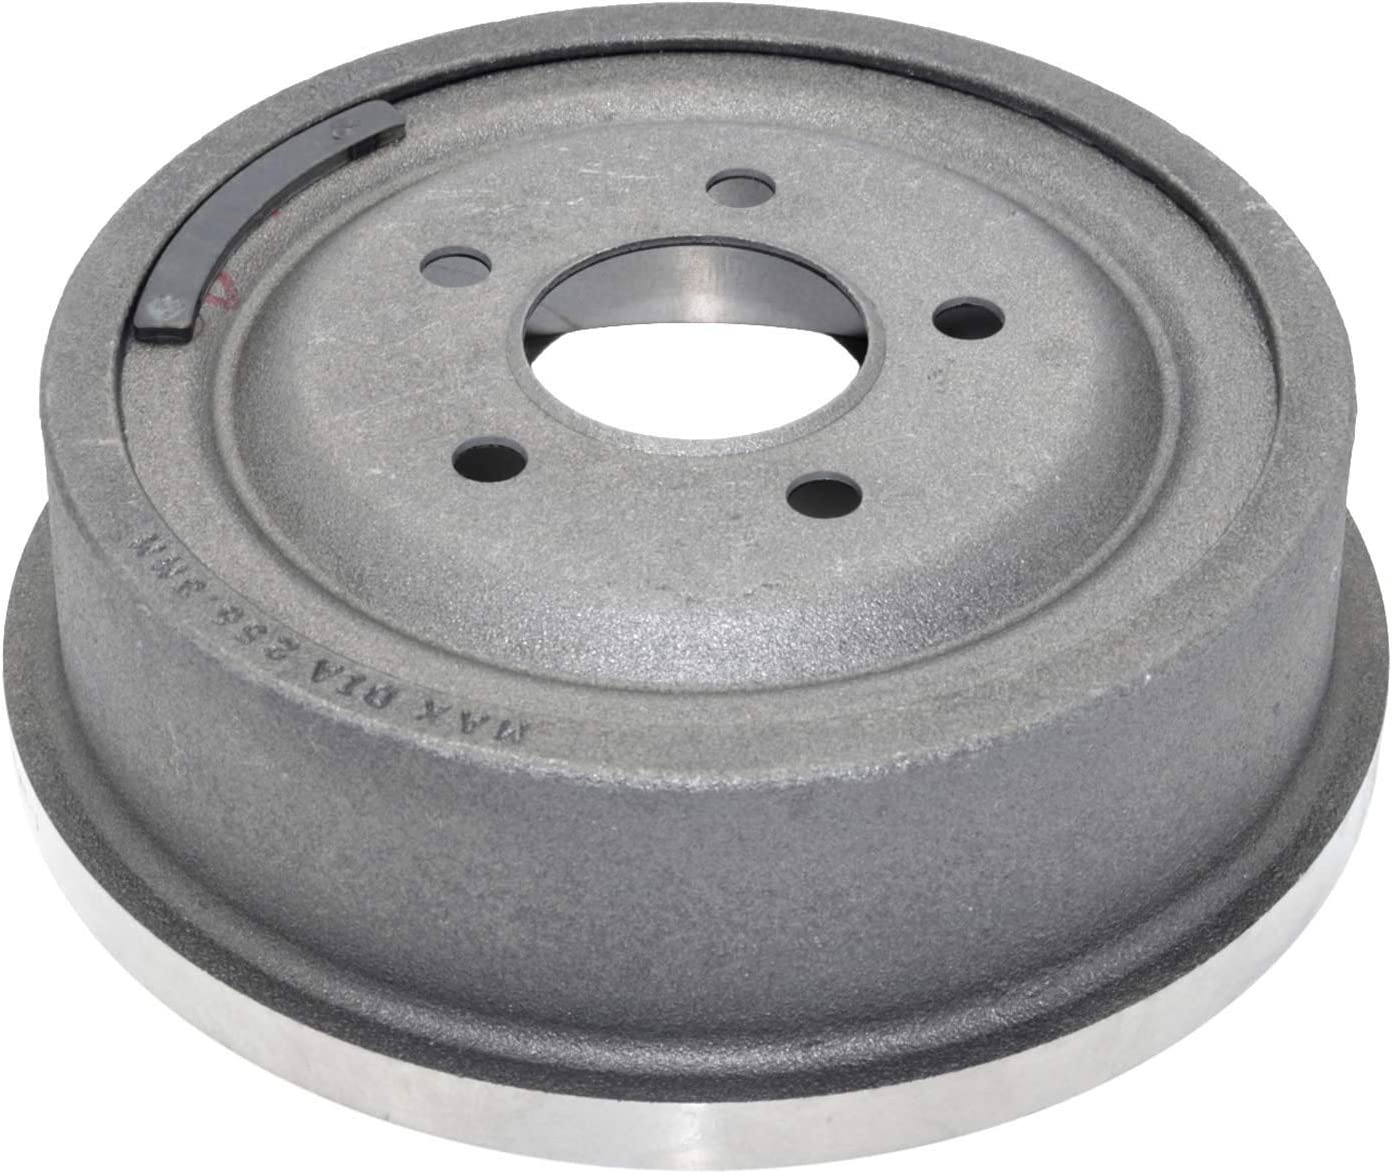 Today's Houston Mall only DuraGo BD8923 Rear Brake Floating Drum